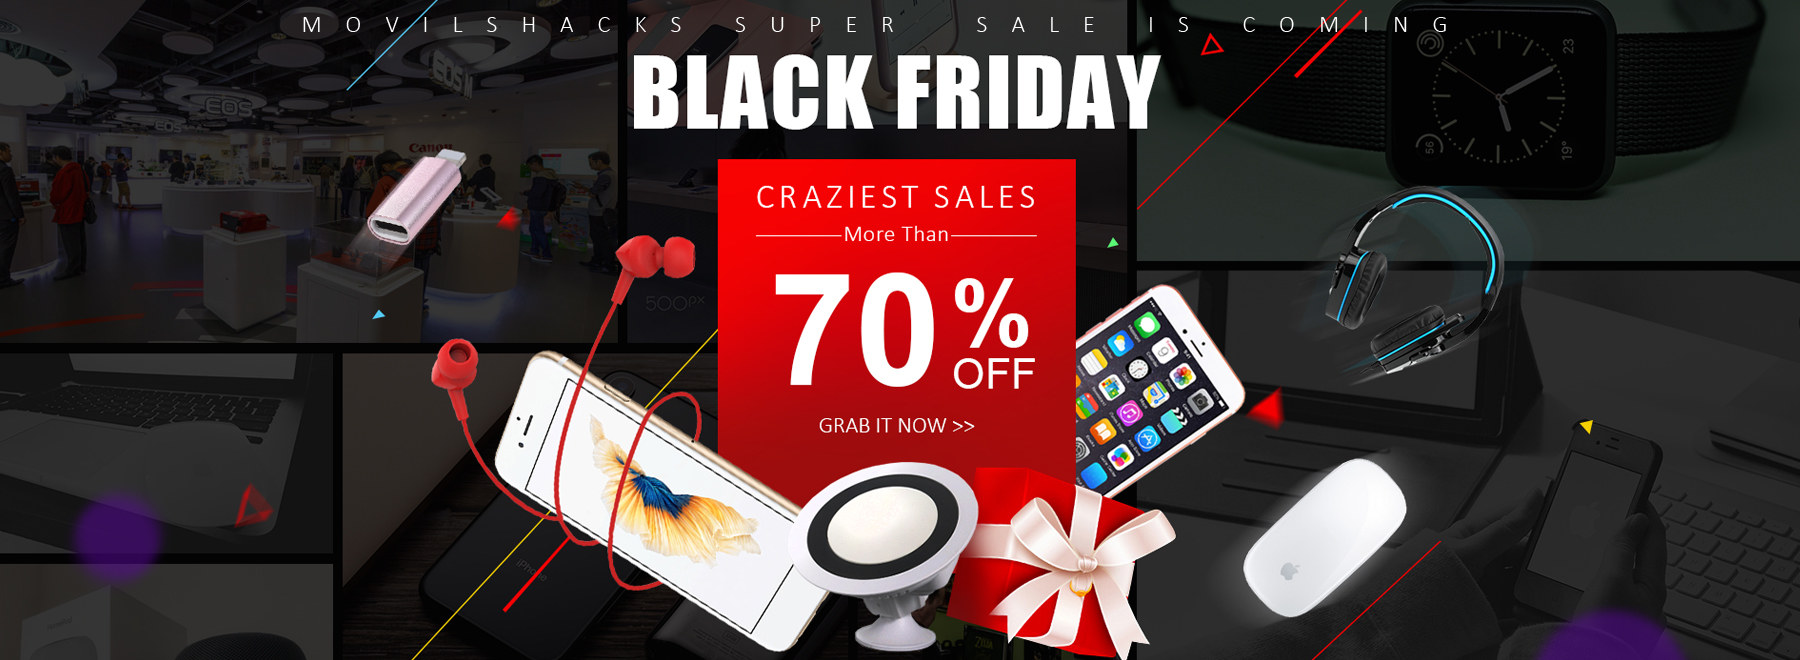 BLACK FRIDAY CRAZIEST SALES More Than 70% Off